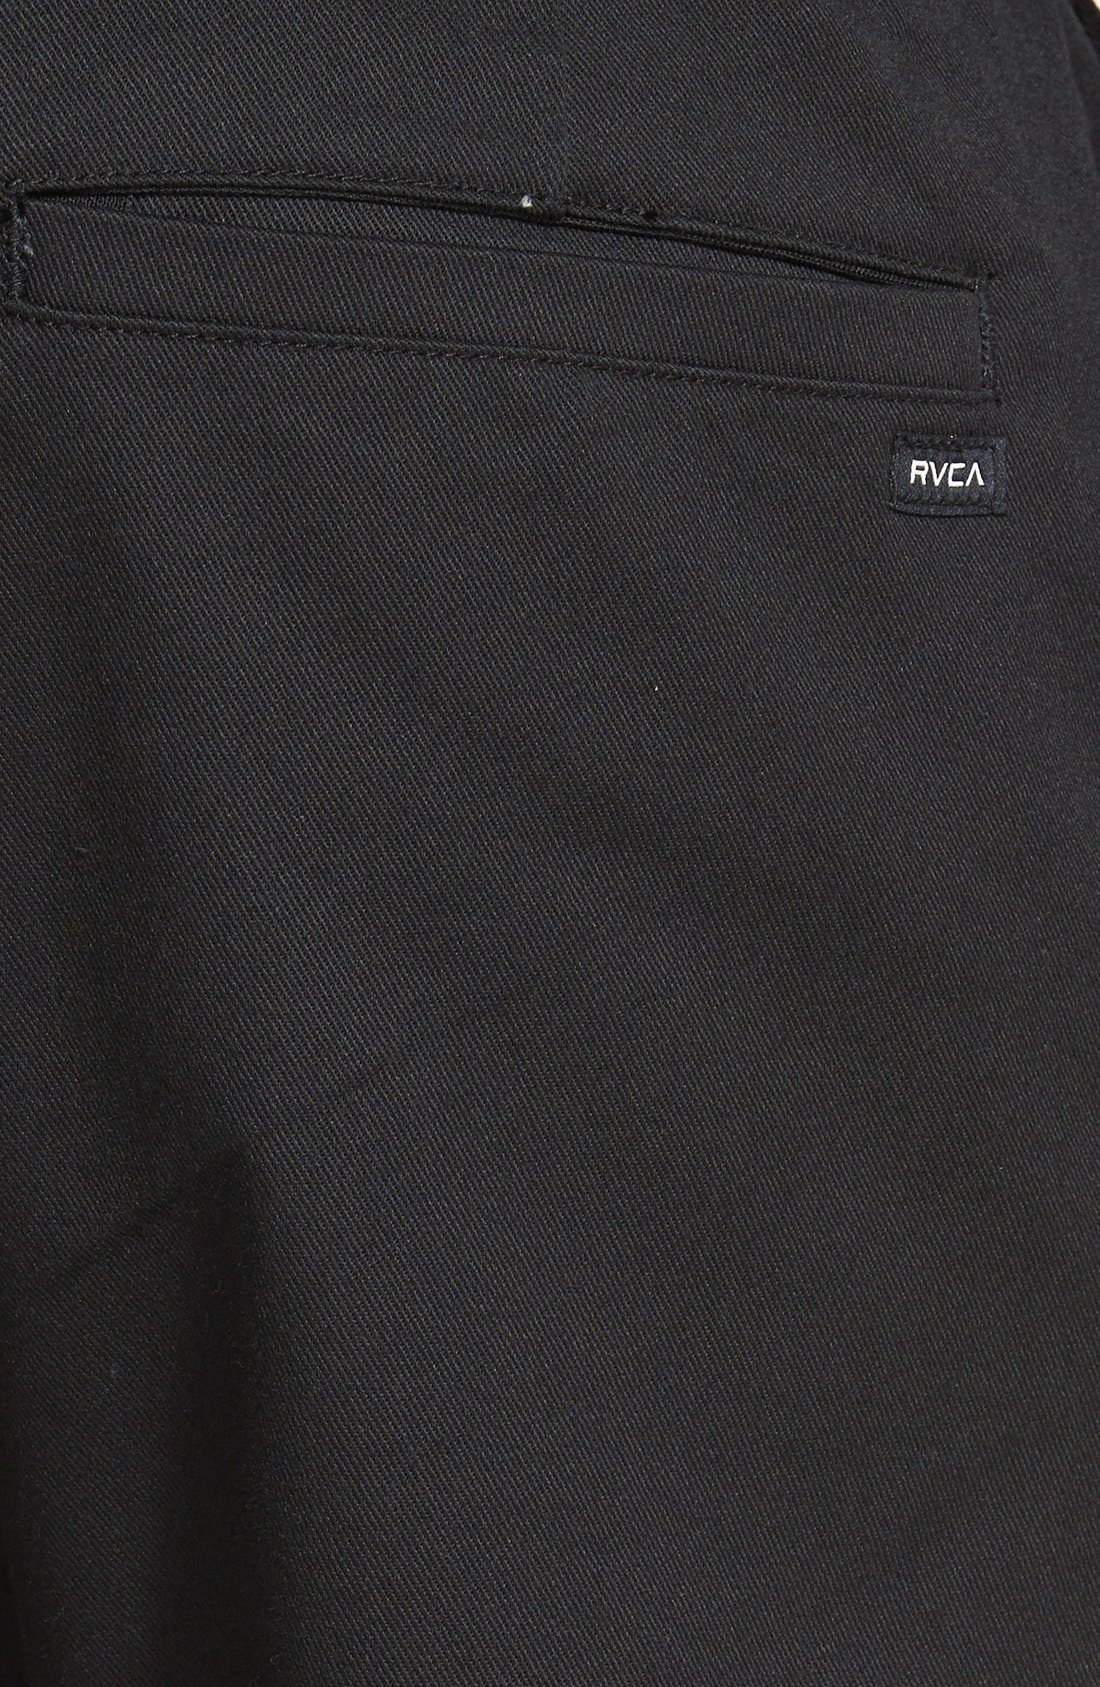 'The Week-End' Slim Straight Leg Stretch Twill Chinos,                             Alternate thumbnail 3, color,                             BLACK